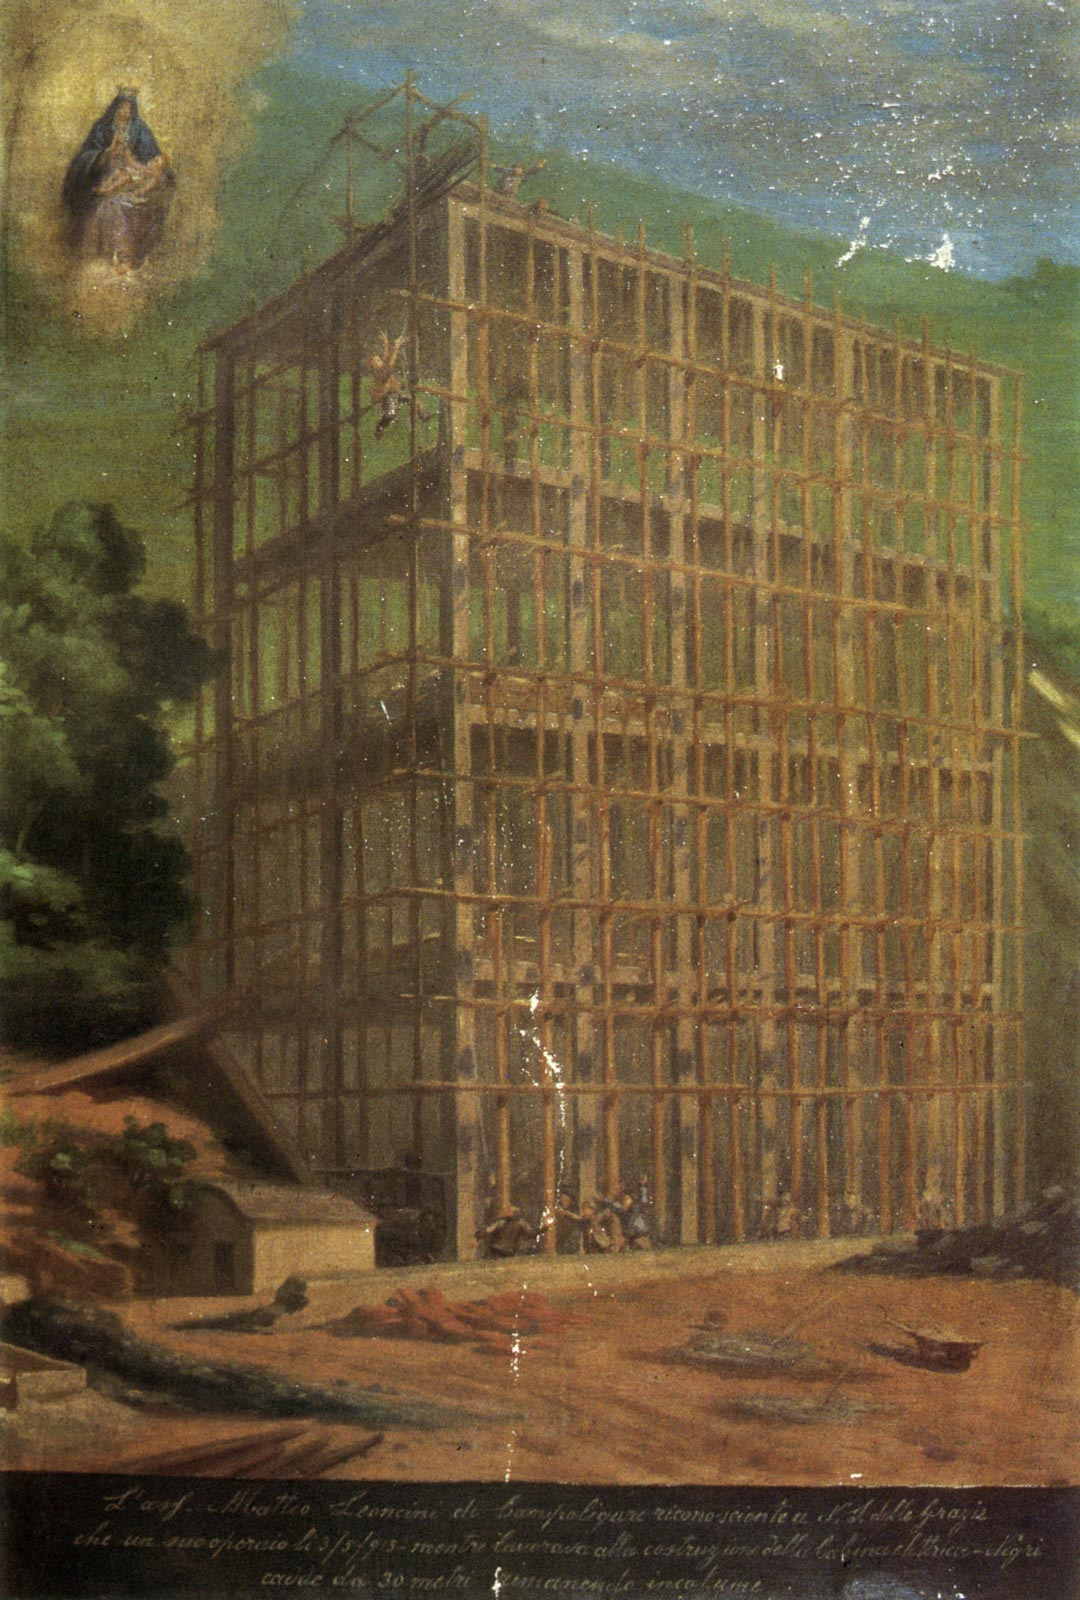 ex-voto-04-a-worker-falls-from-scaffolding-may-3-1913